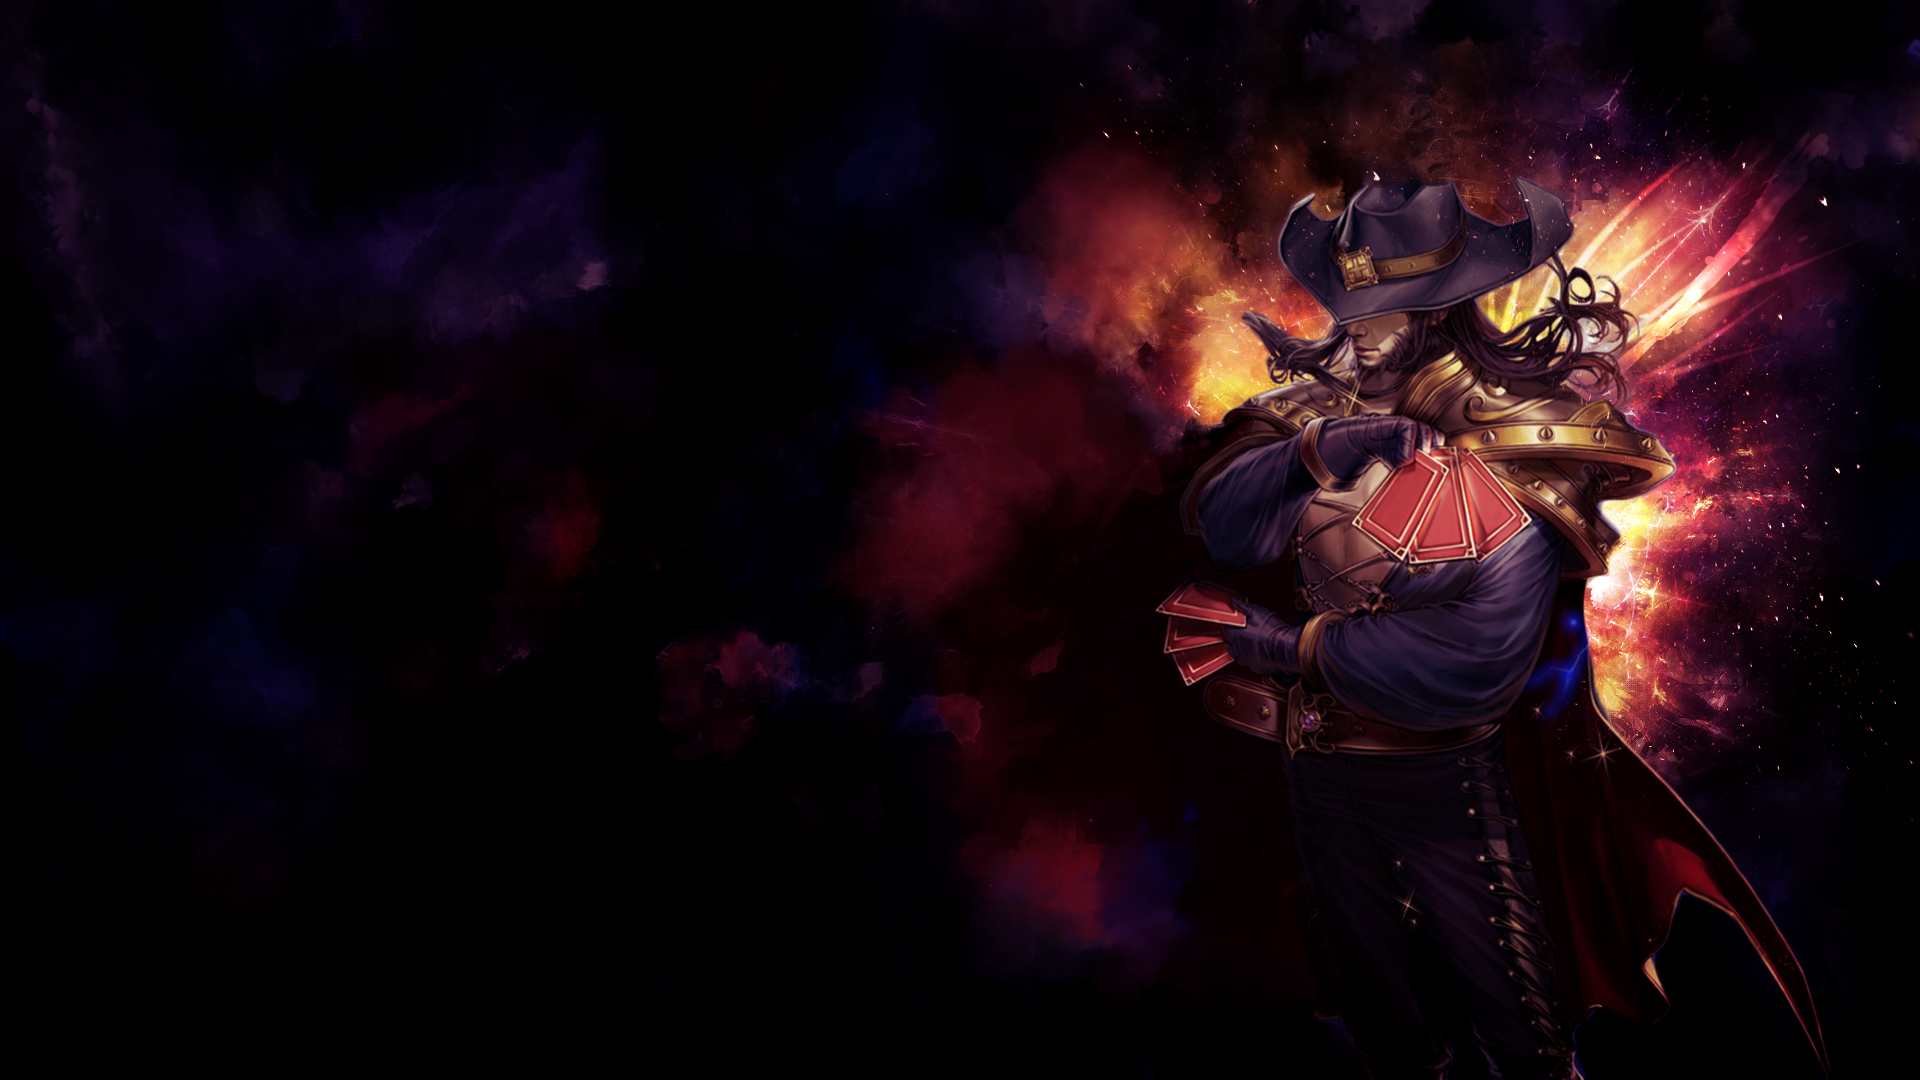 Twisted Fate | LoLWallpapers